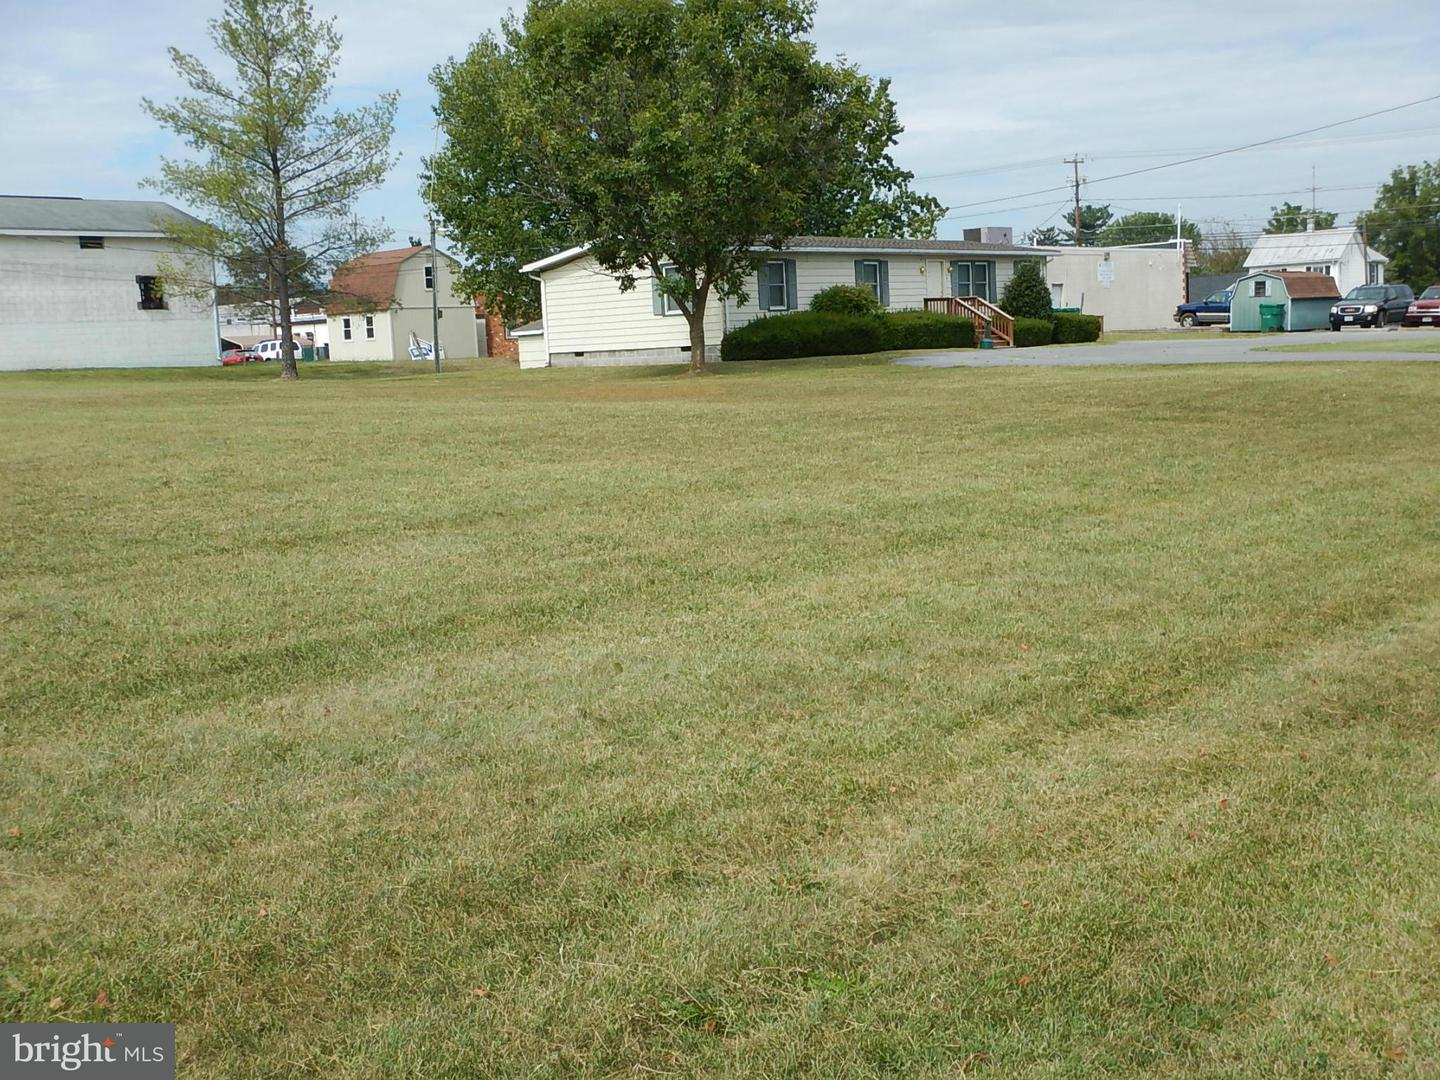 Additional photo for property listing at 4 Canaan St  Luray, Virginia 22835 United States